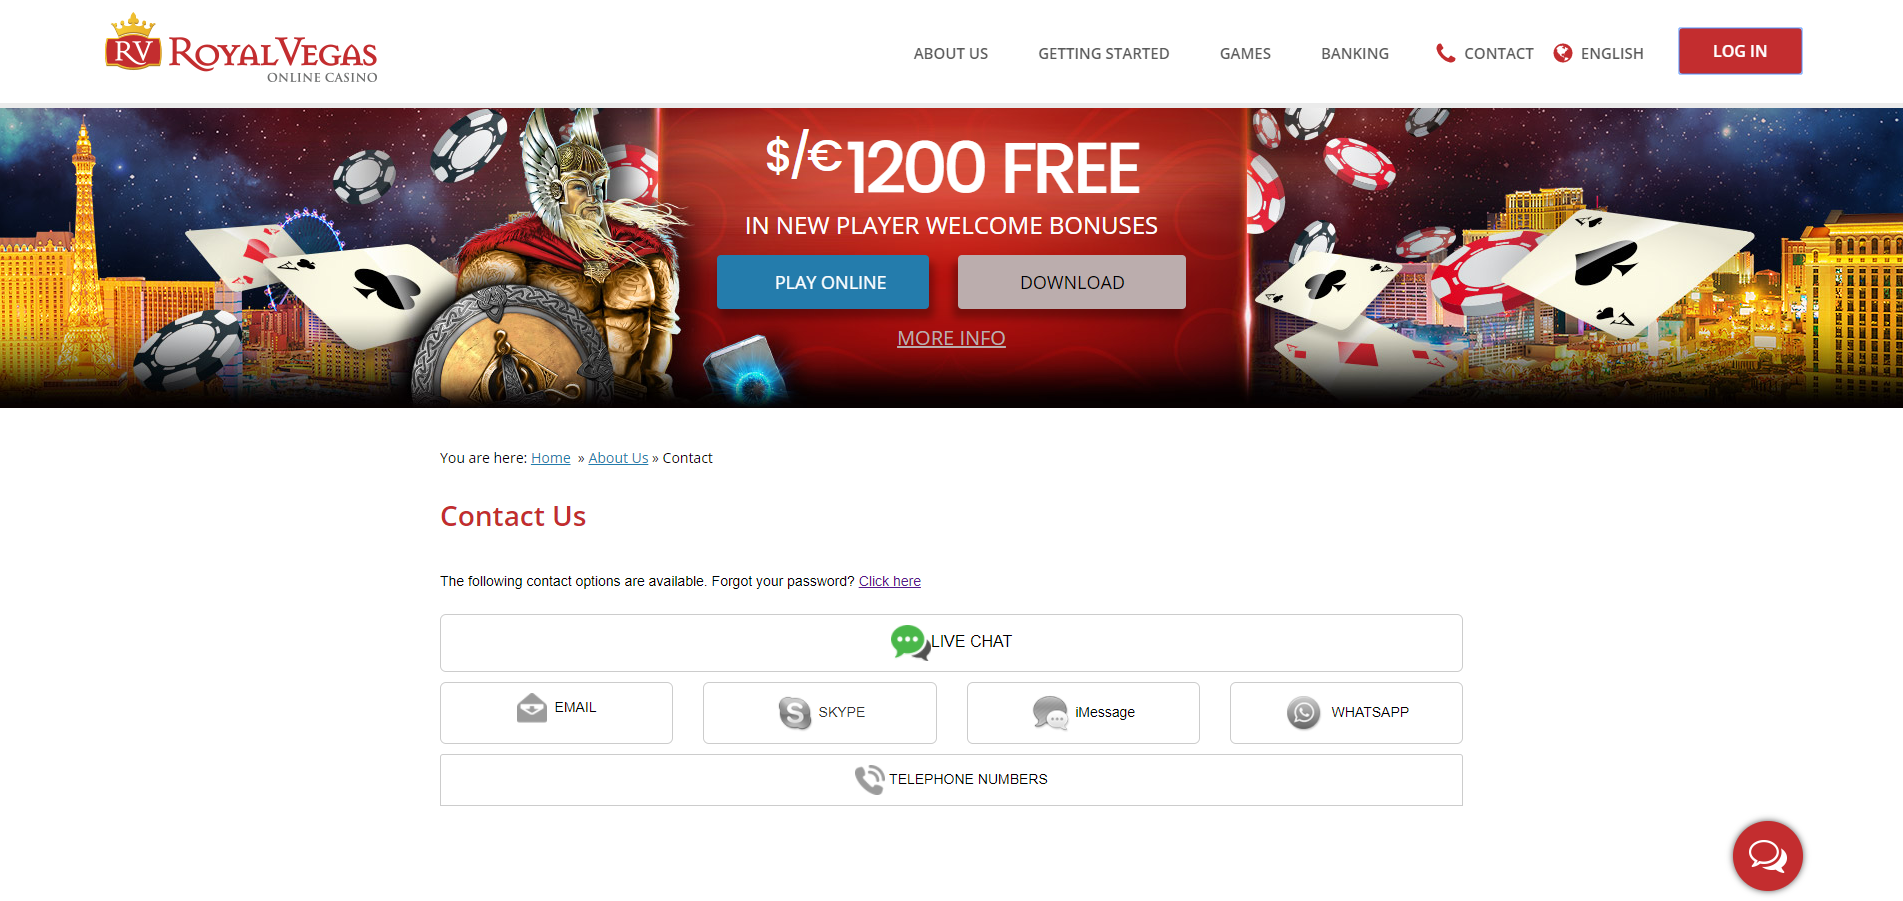 Casino Estrella Online Review With Promotions & Bonuses